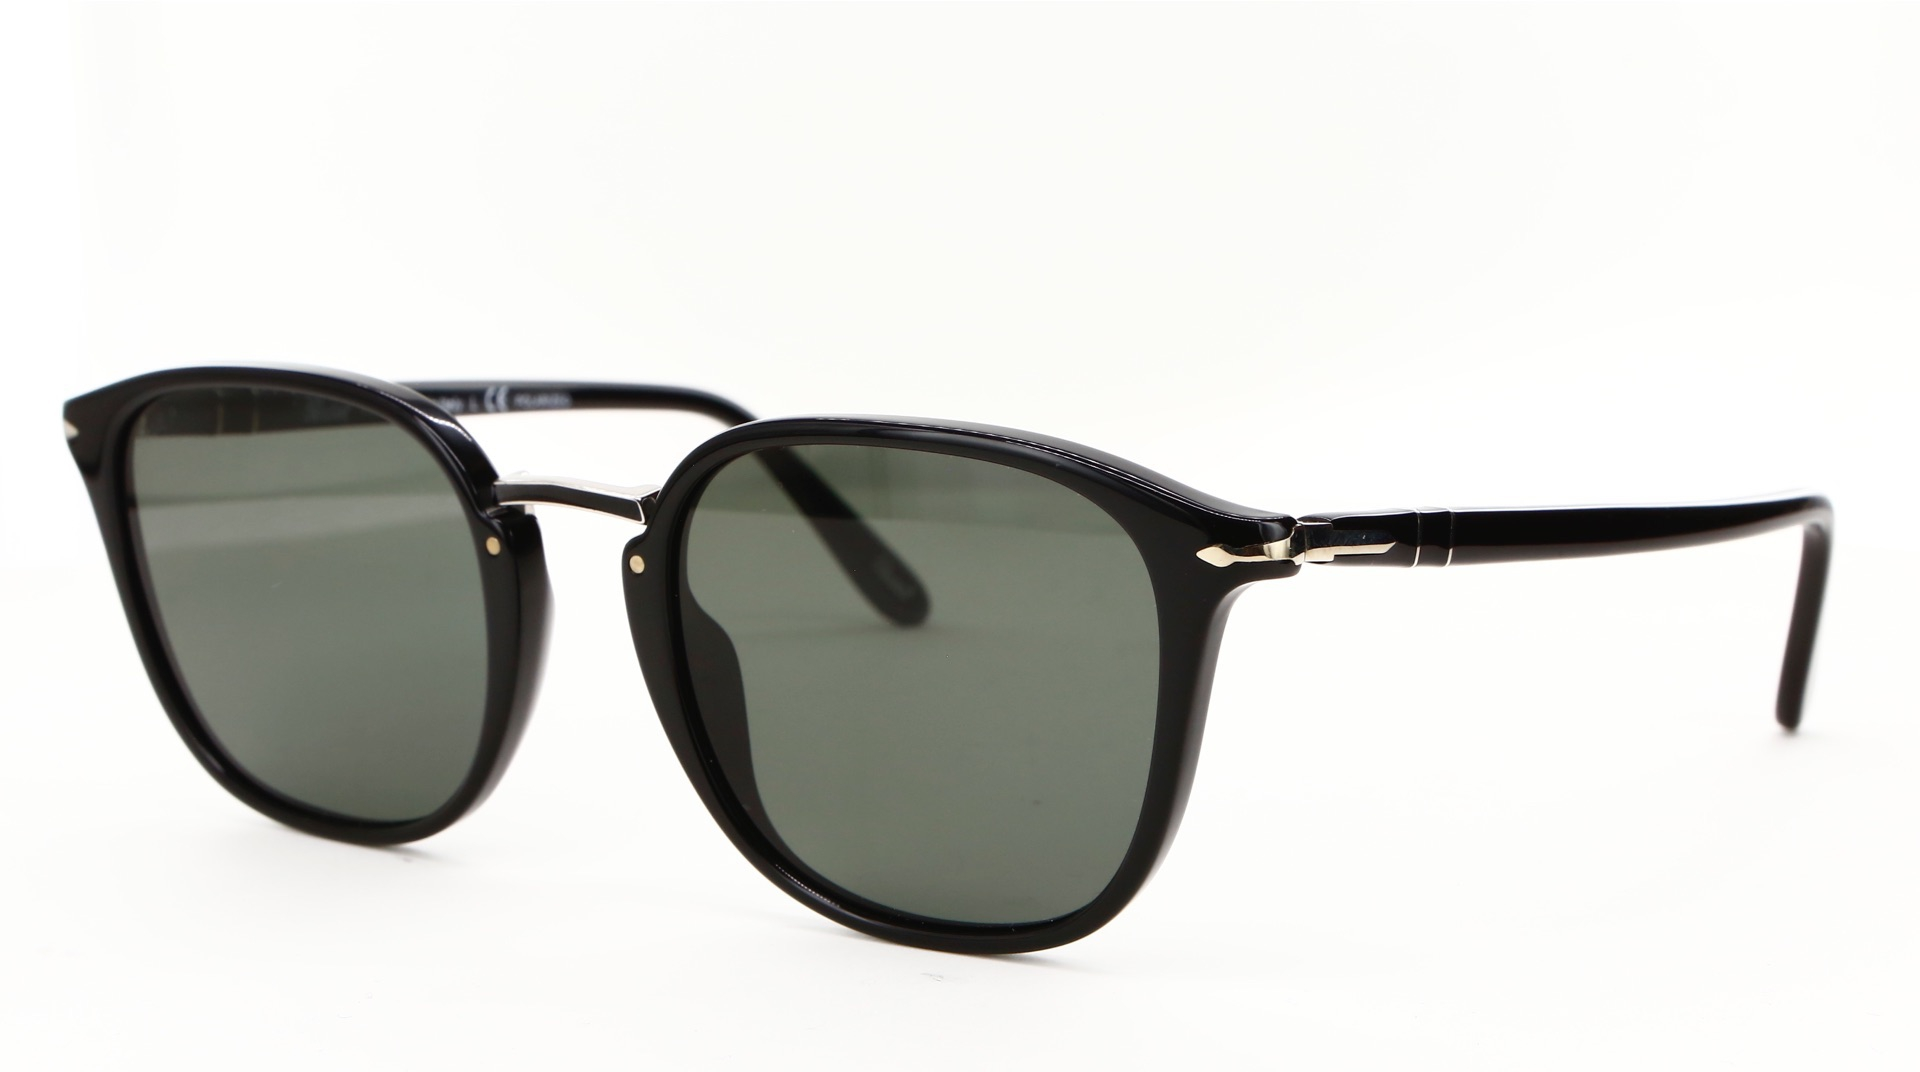 Persol - ref: 79279